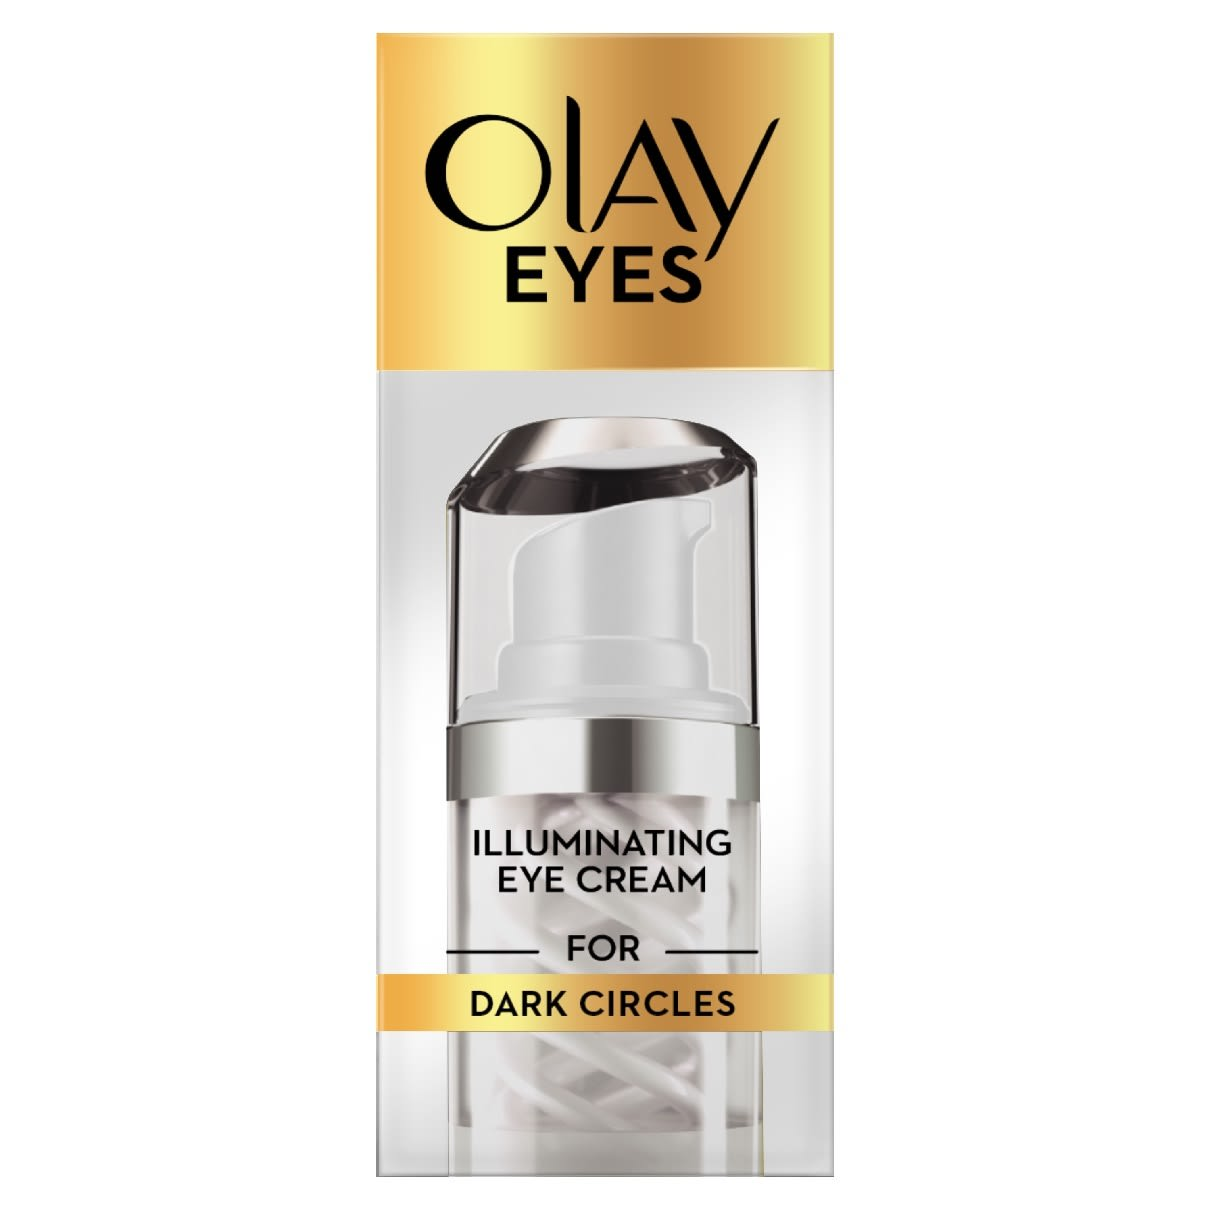 Olay Eyes Illuminating Eye Cream For Dark Circles 15 Ml